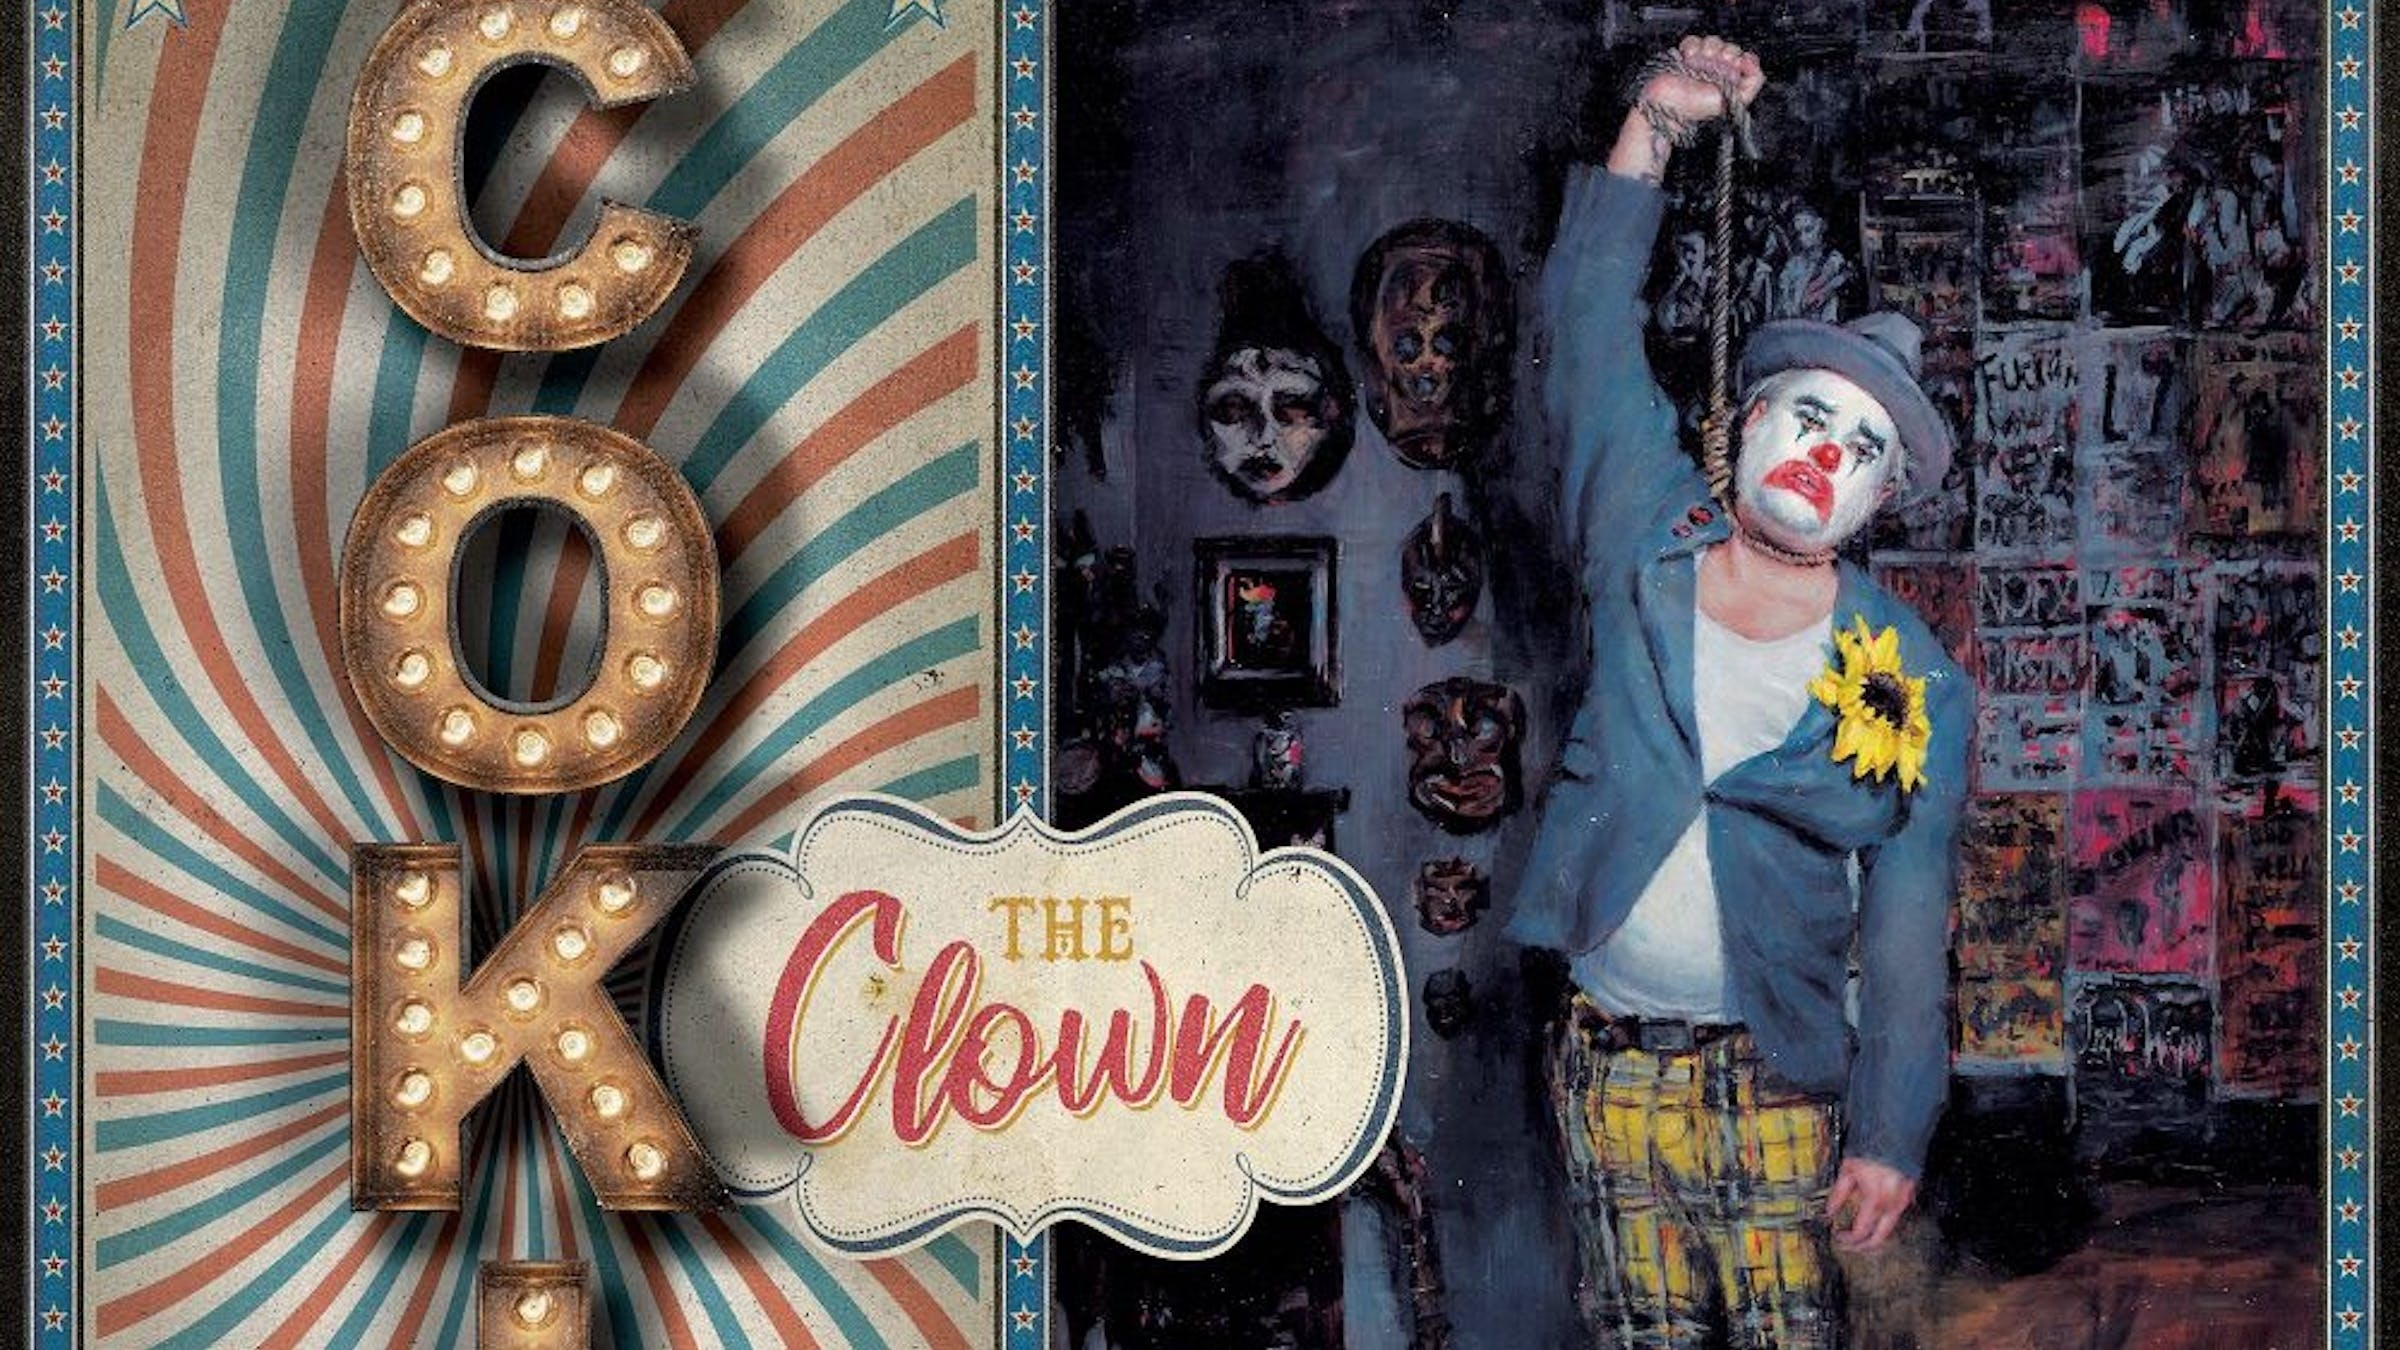 Cokie The Clown (NOFX's Fat Mike) Releases New Single Featuring Travis Barker